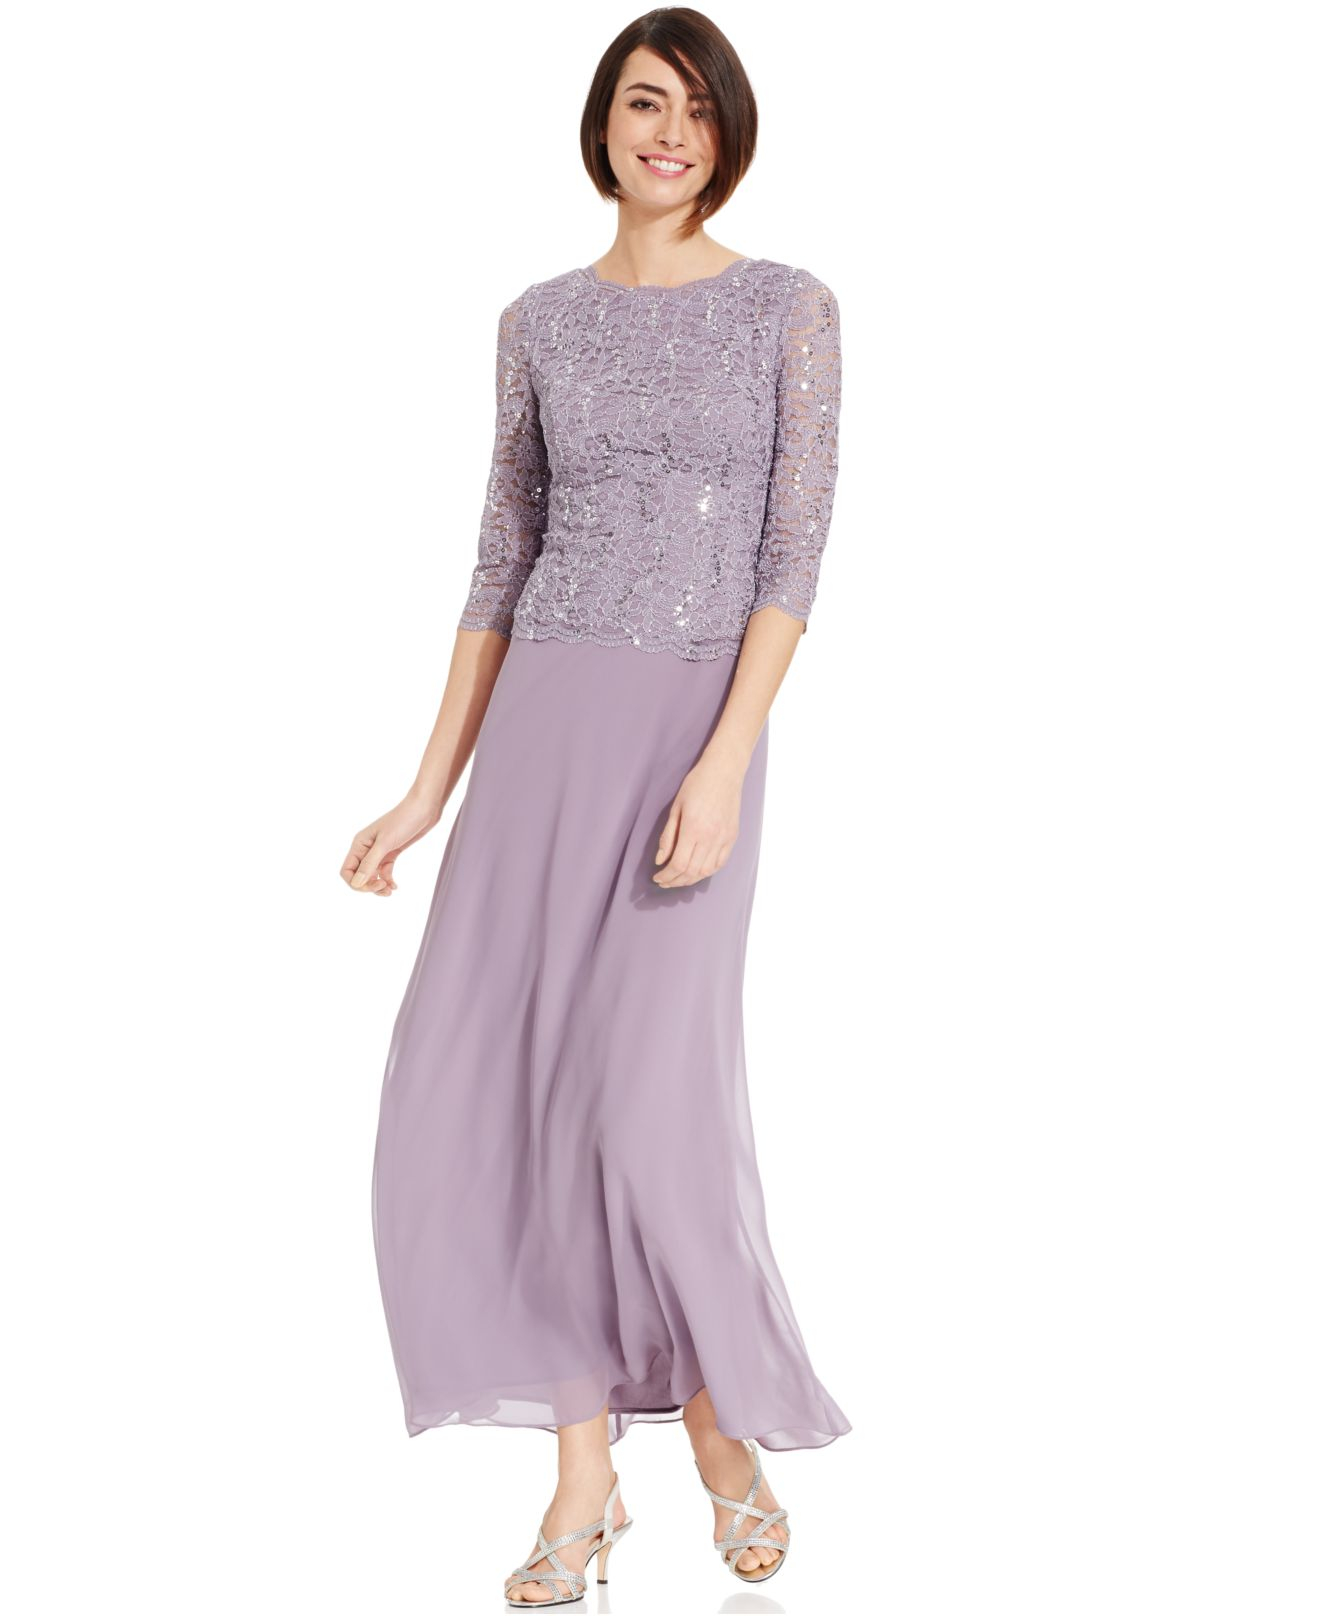 037dc791616 Alex Evenings Petite Elbow-sleeve Sequin Lace Gown in Purple - Lyst